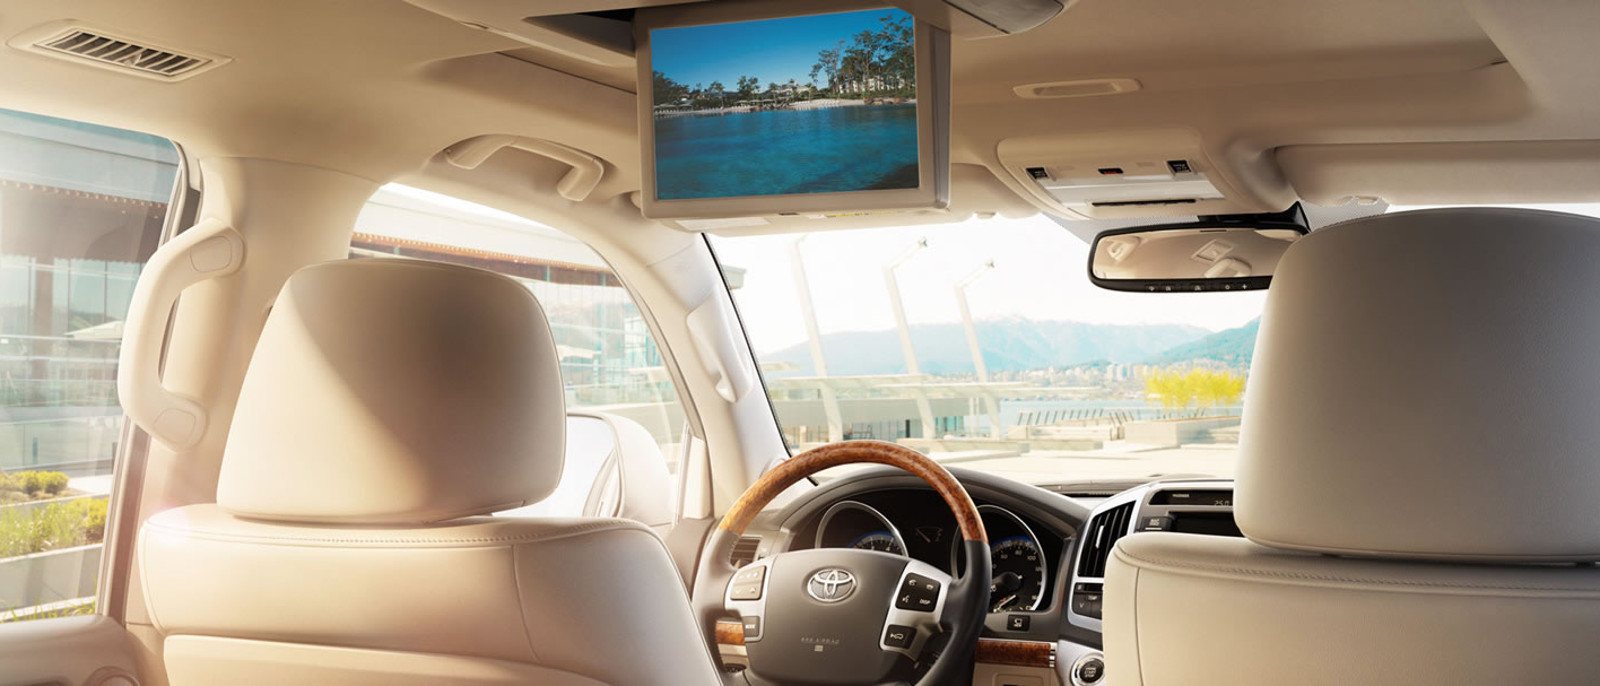 2015 Toyota Landcruiser Rear Seat DVD